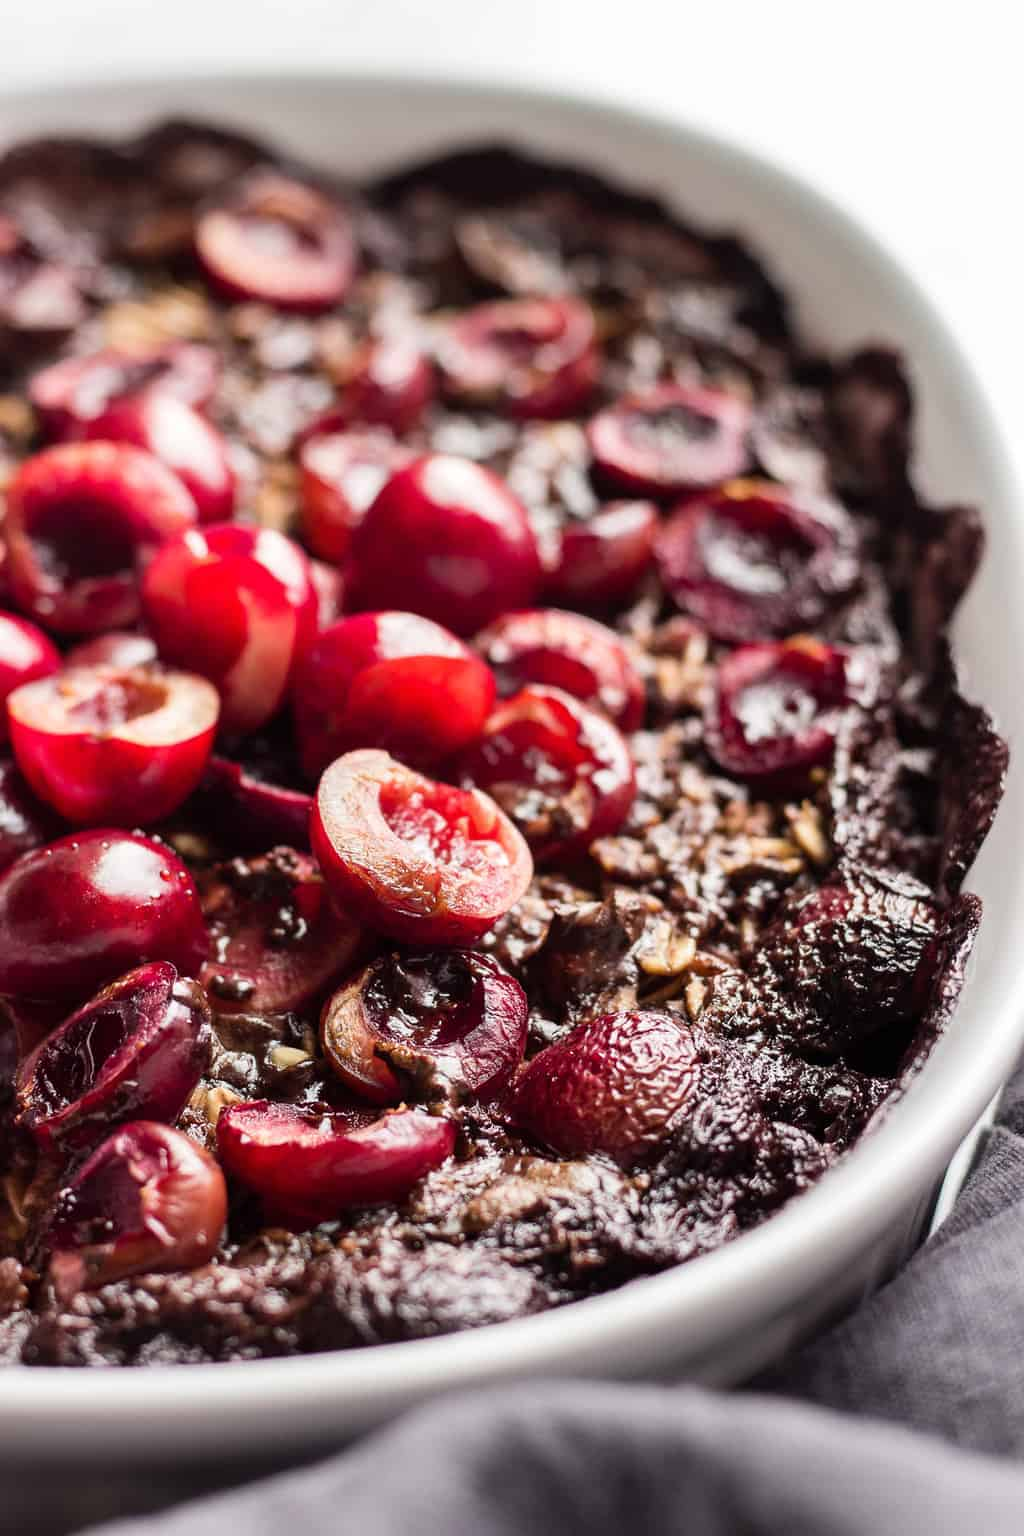 Baked vegan oatmeal with cacao, chocolate and fresh cherries